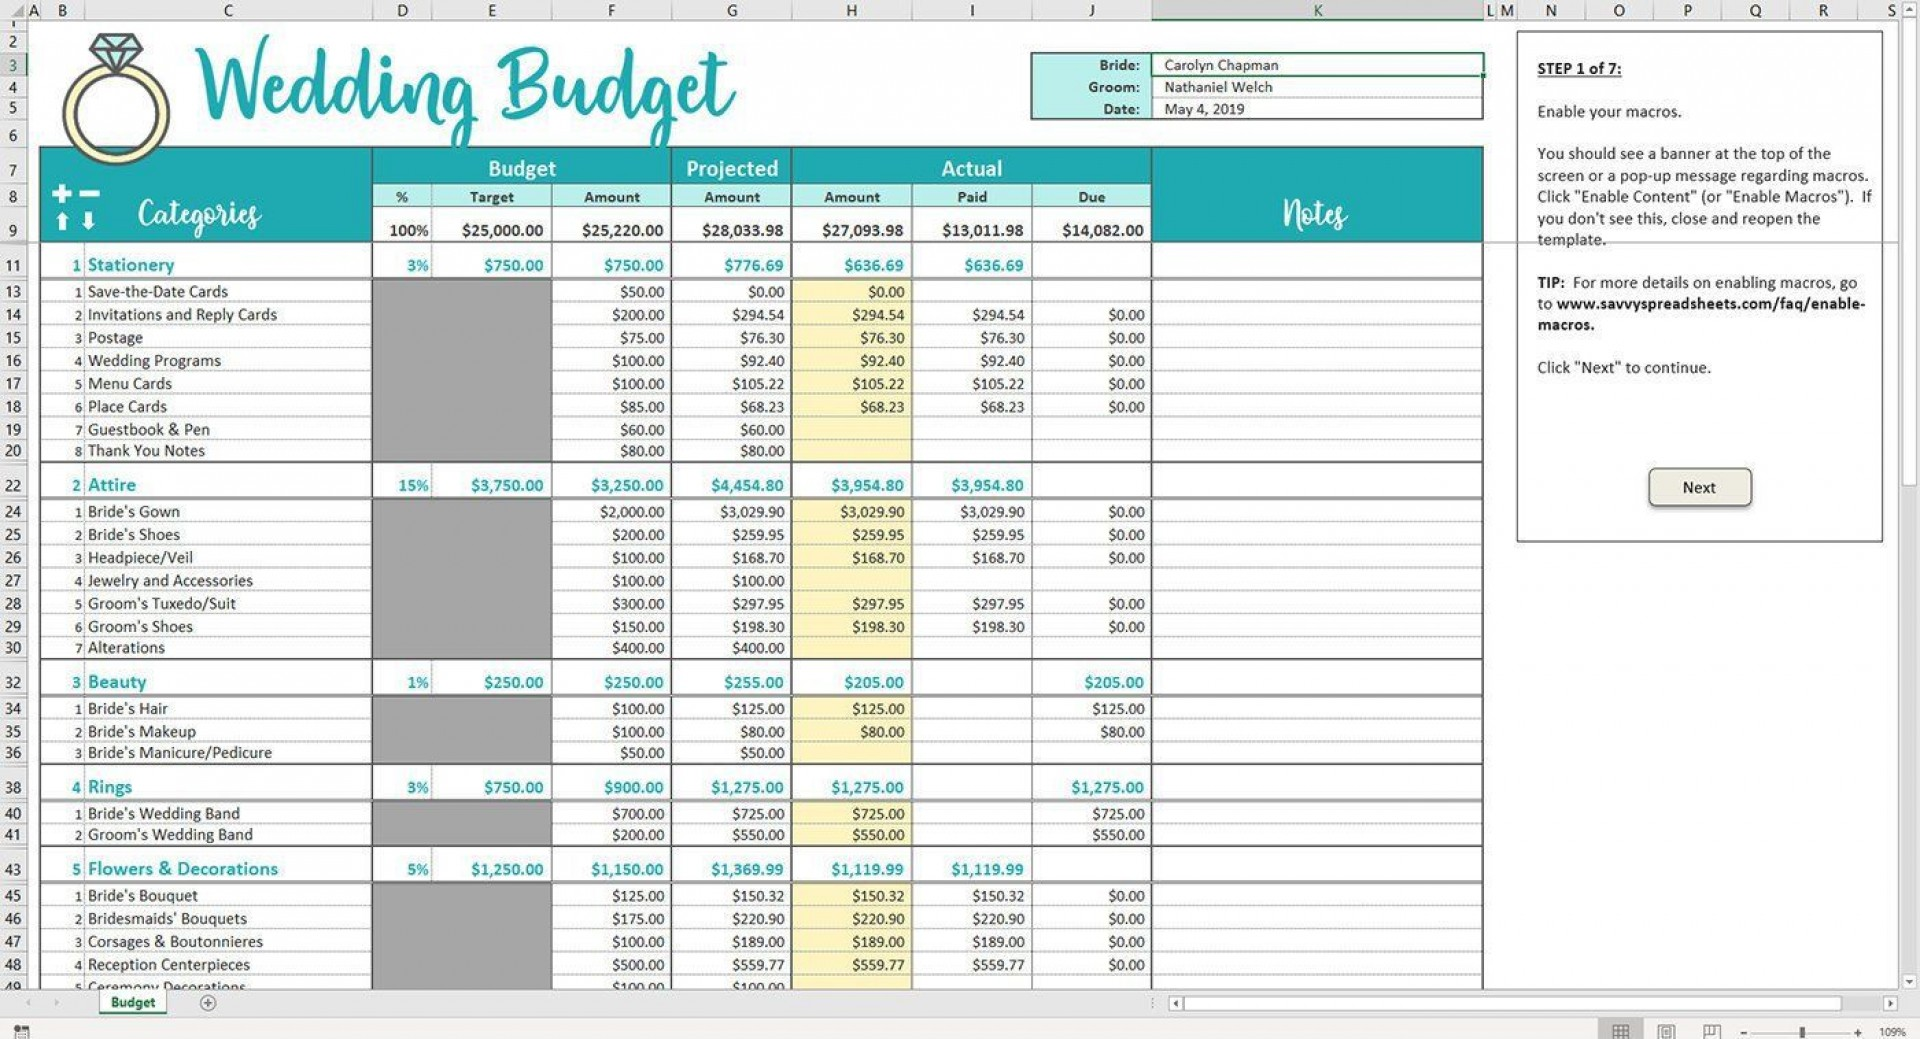 002 Phenomenal Wedding Budget Template Excel High Definition  South Africa Sample Spreadsheet1920